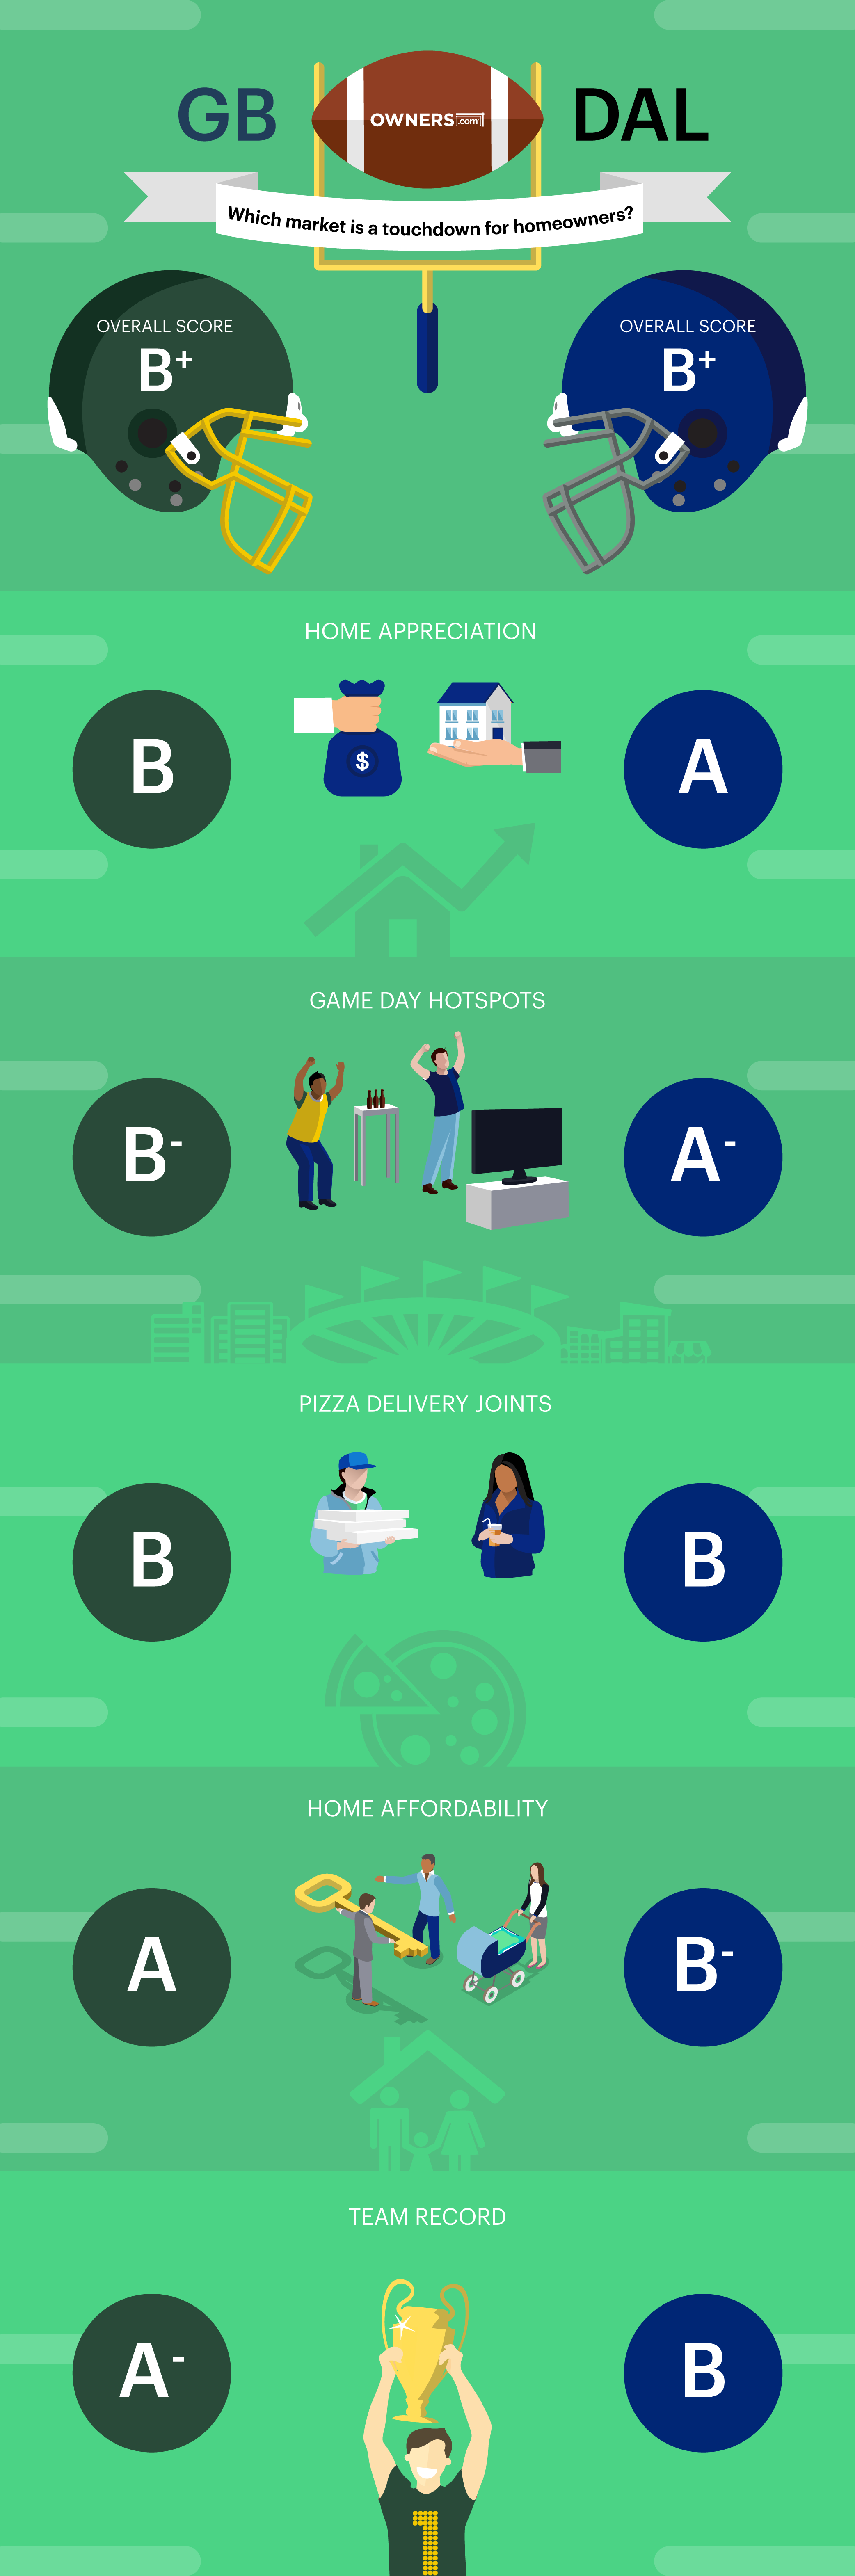 OWNERS_NFL_INFOGRAPHIC_GB_VS_DAL